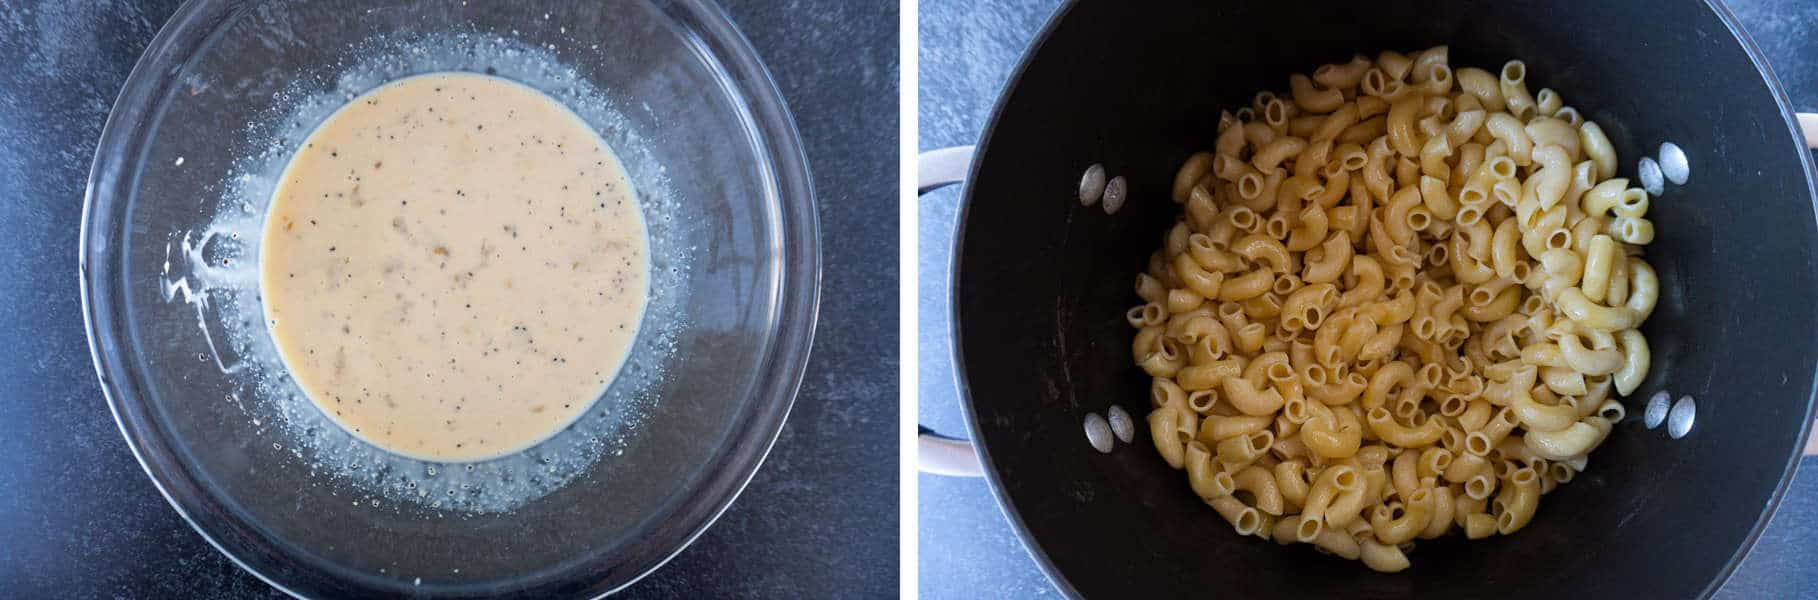 Butter sauce and cooked/buttered noodles